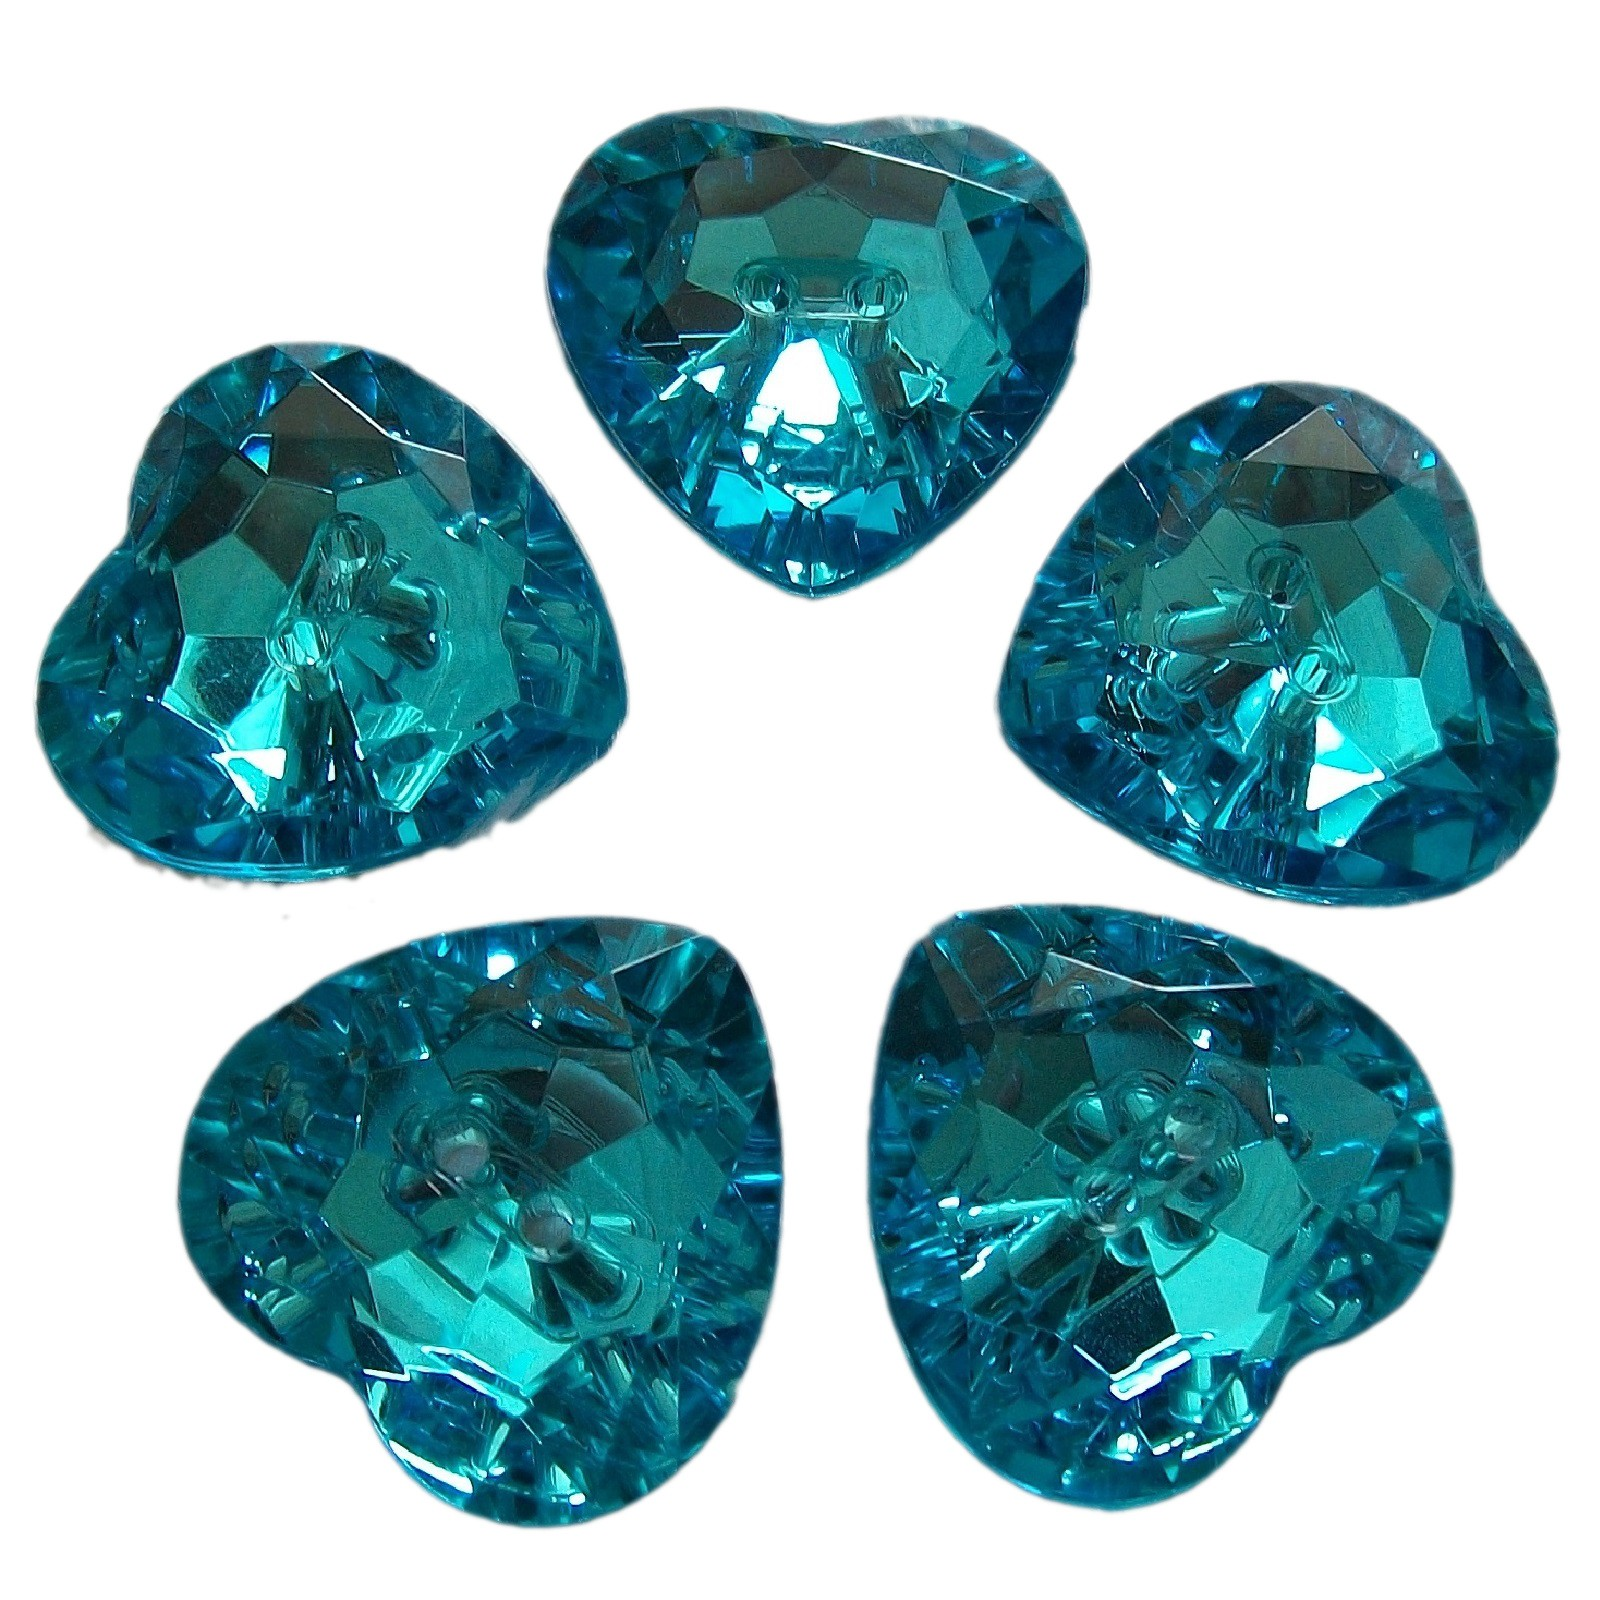 Acrylic Crystal Effect Heart Shape Buttons 12mm Turquoise Pack of 5